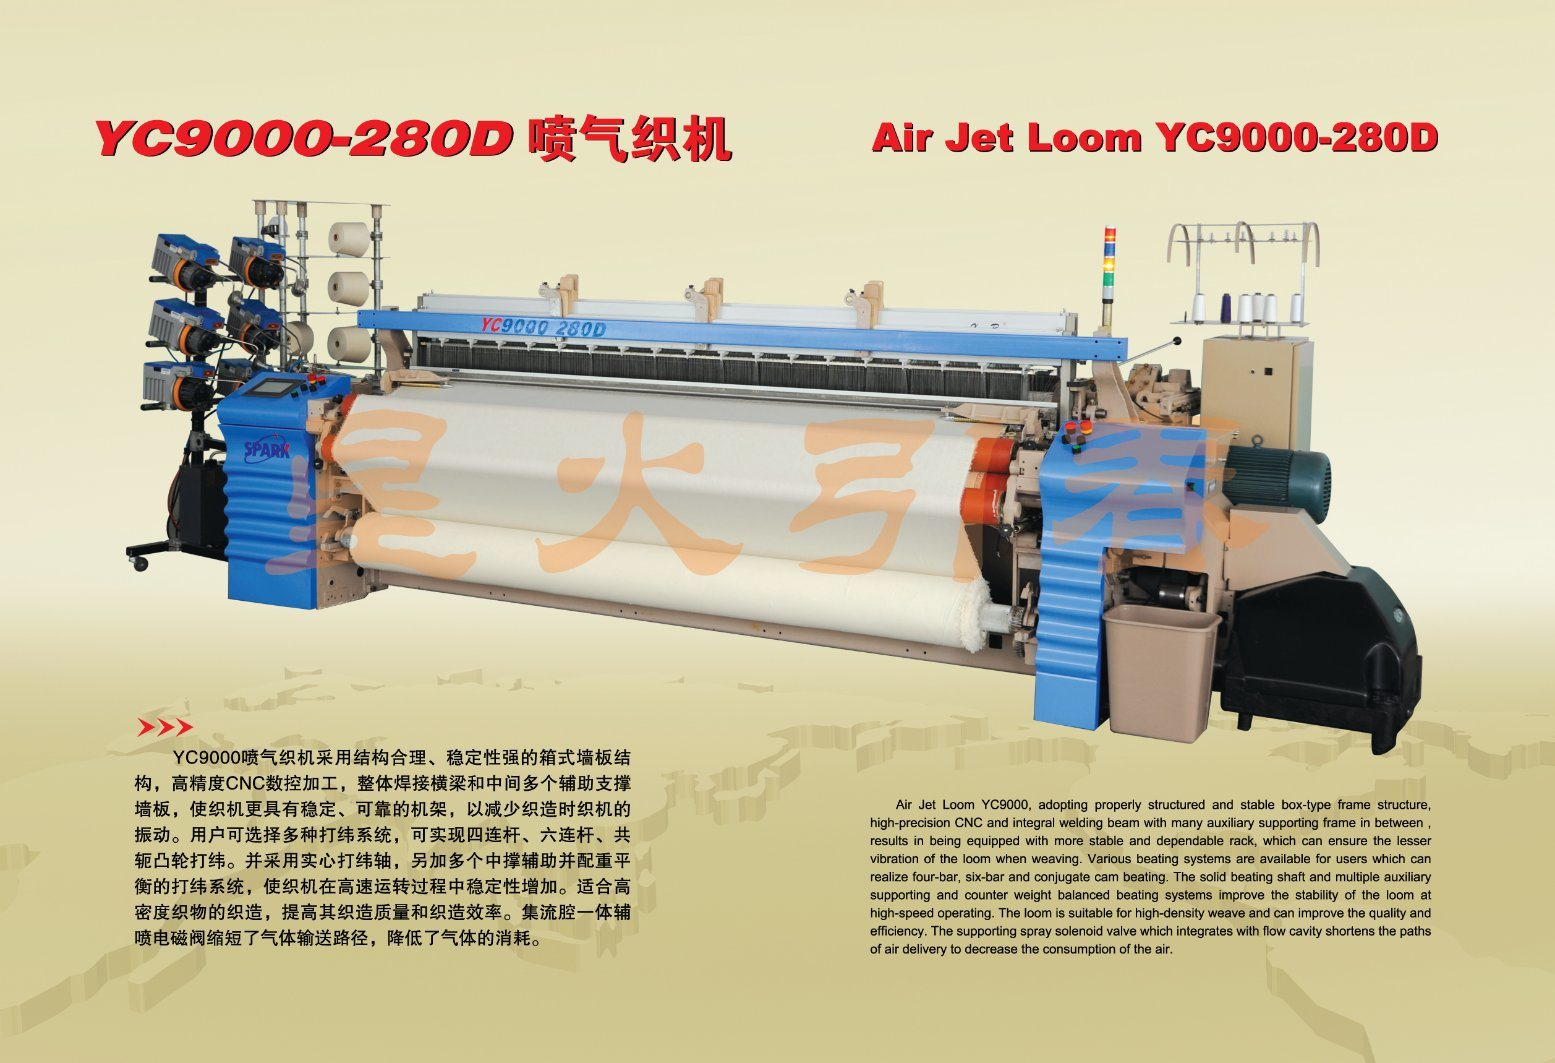 The Newest Model of Air Jet Loom Yc910 for Weaving Denim Fabric